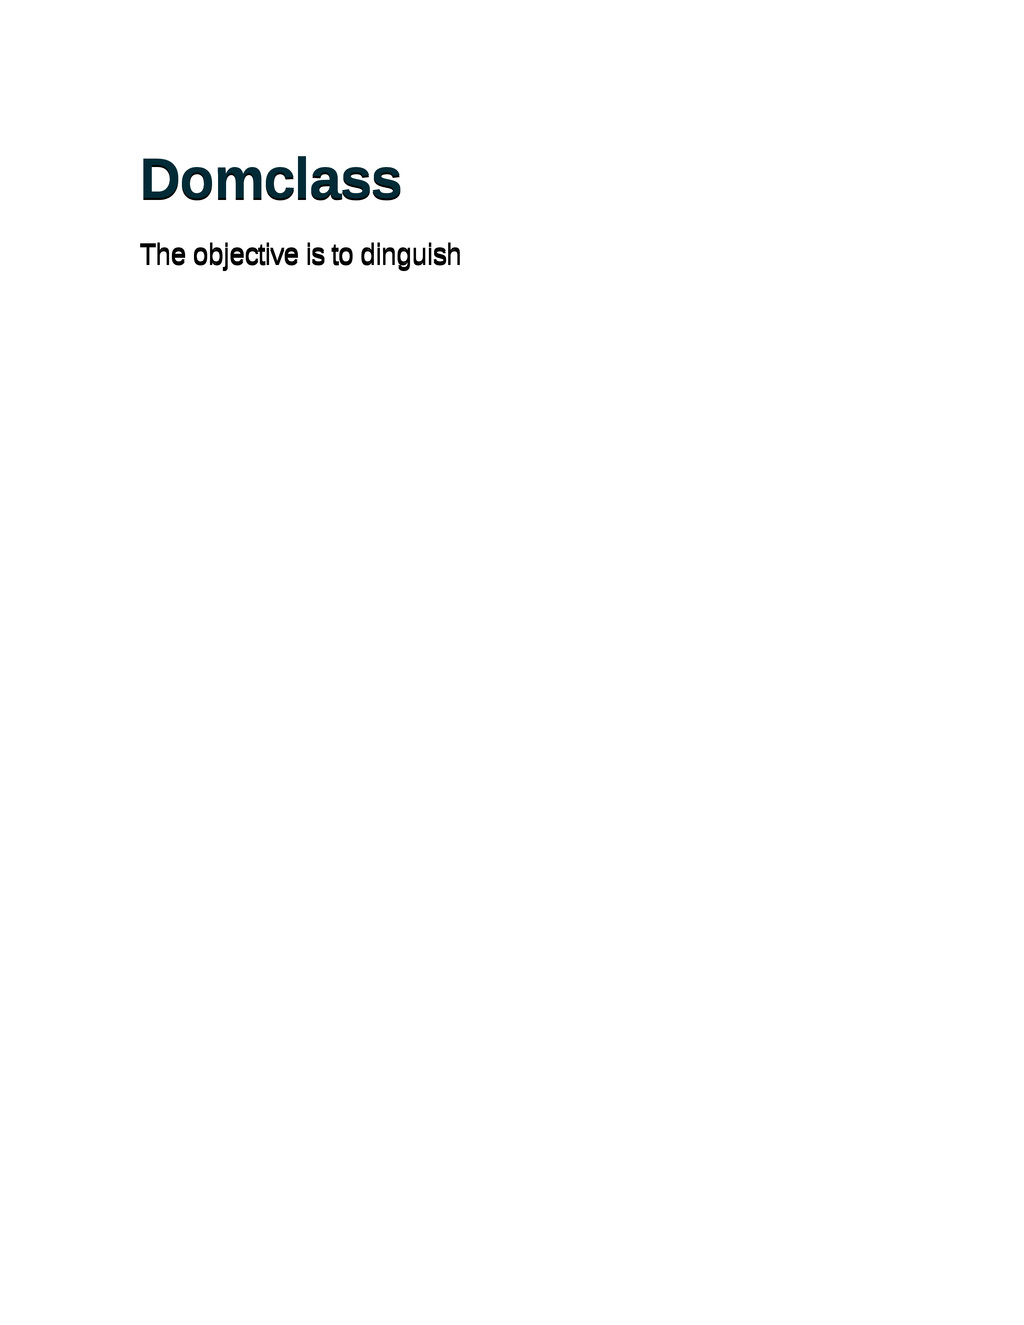 Domclass Domclass The objective is to dinguish ...